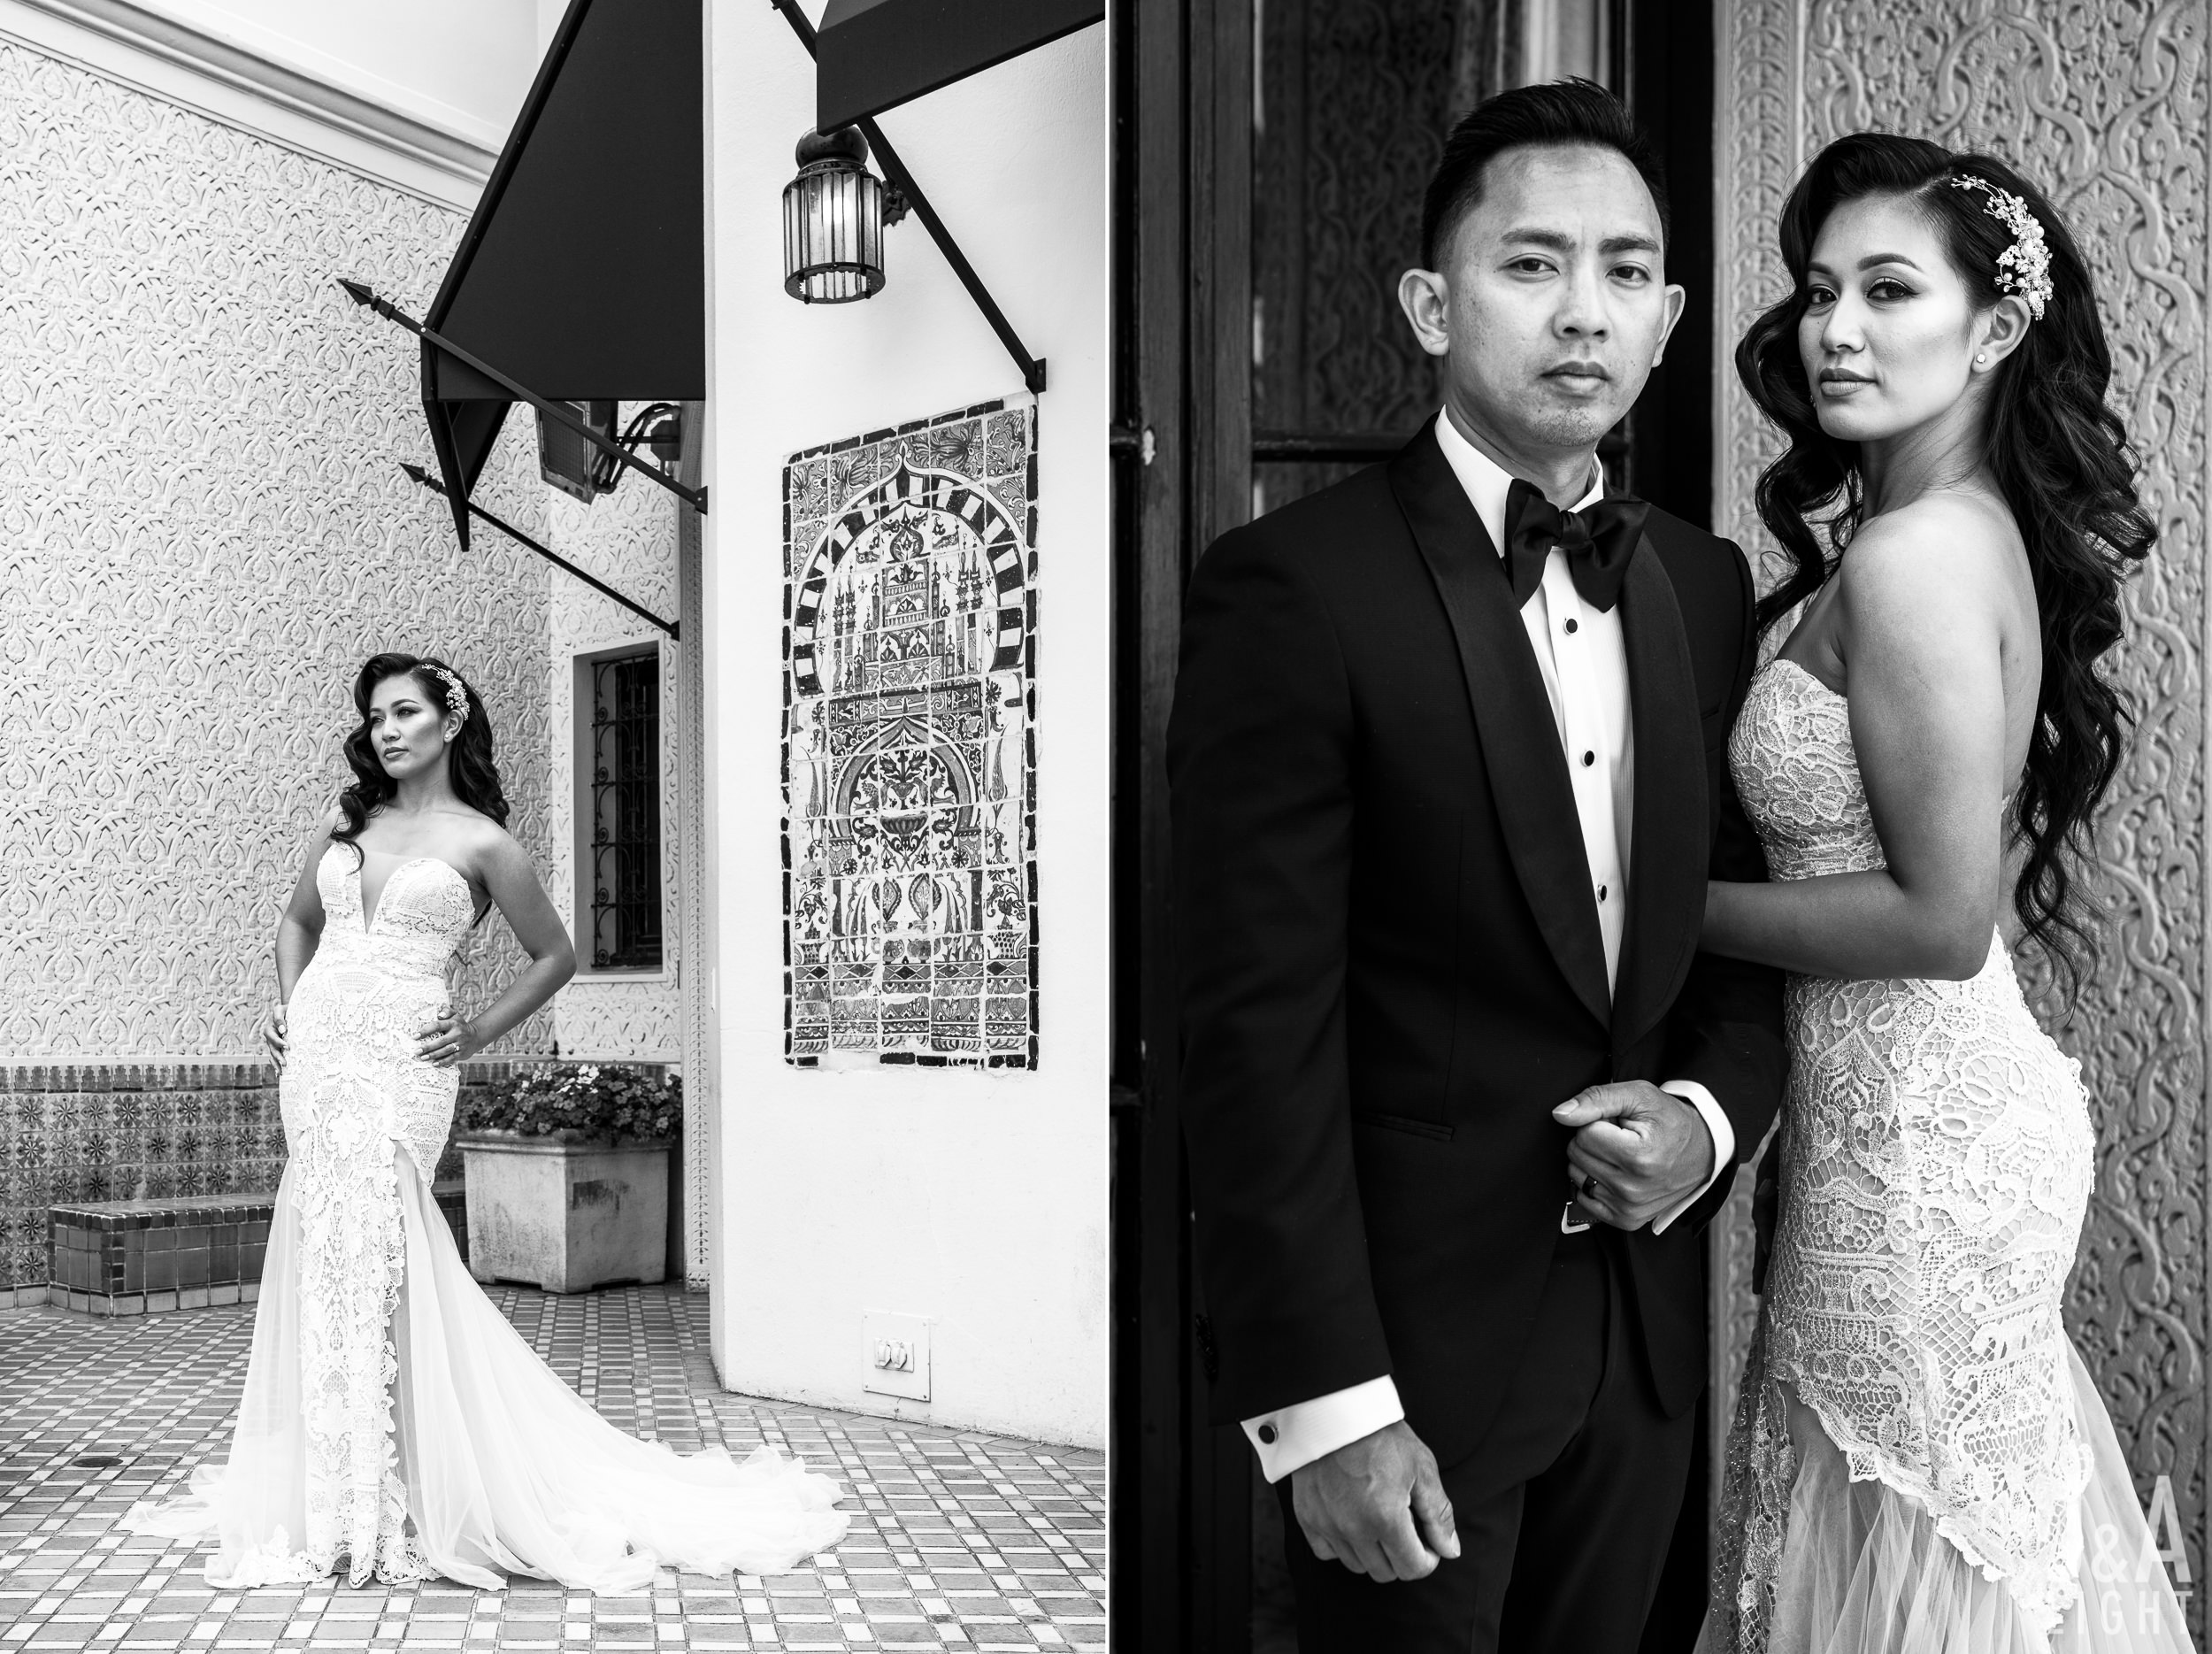 20180722-AdrJohPost-FairmontSanFranciscoWedding_FairmontEngagement-014.jpg